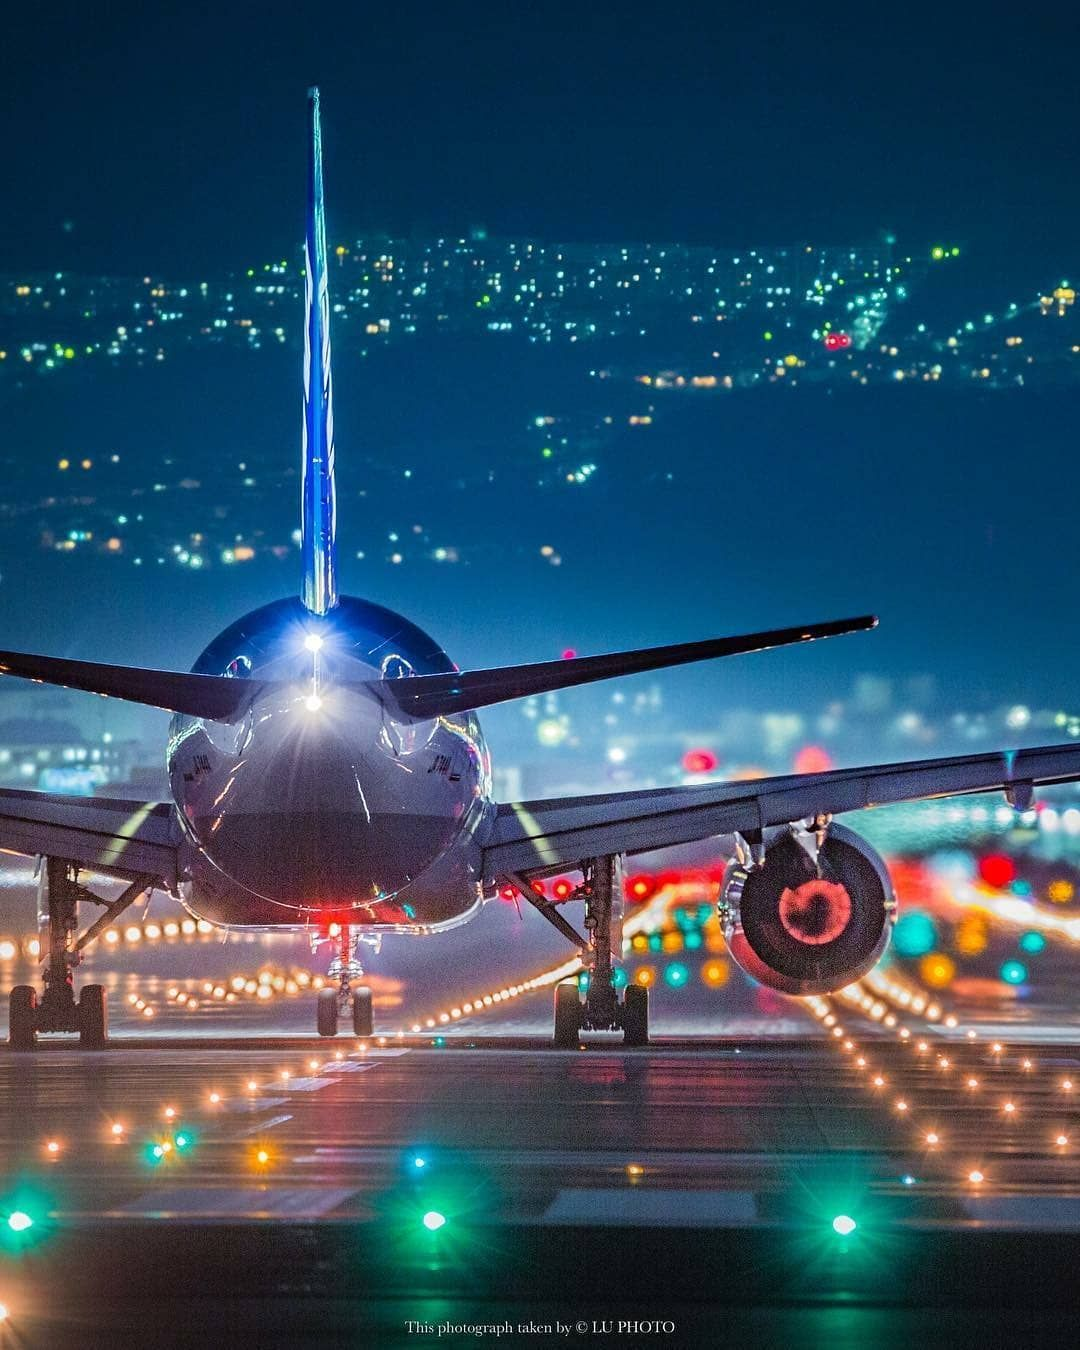 15 5k Likes 223 Comments Dof Geometry Bokeh Depthobsessed On Instagram D E P T H O B S E S Airplane Wallpaper Aircraft Airplane Photography